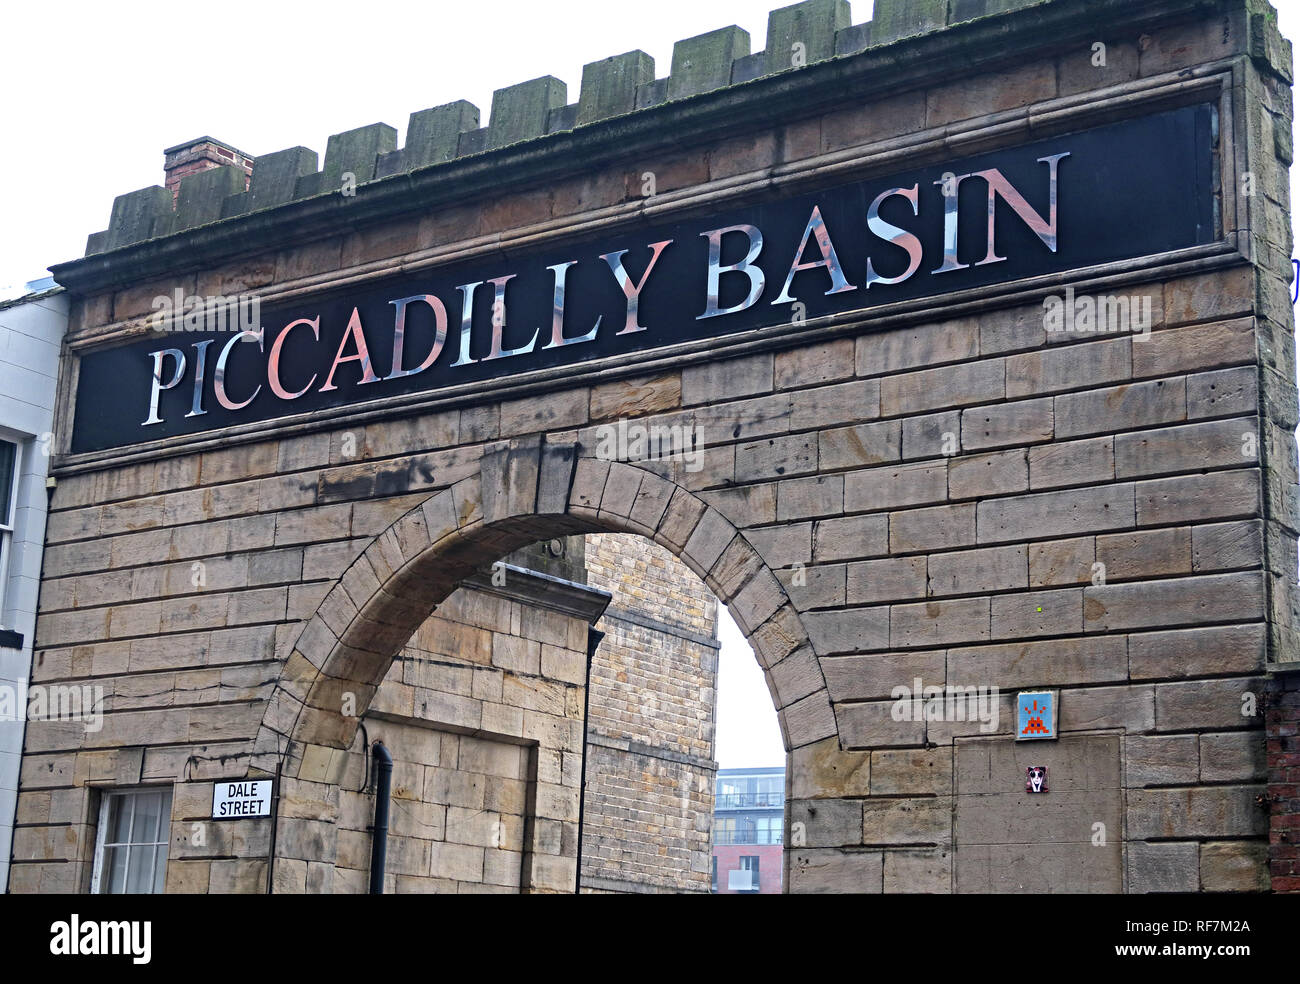 Piccadilly Basin Arch, Car Park, Dale Street, Manchester, UK, M1 2HG - Stock Image